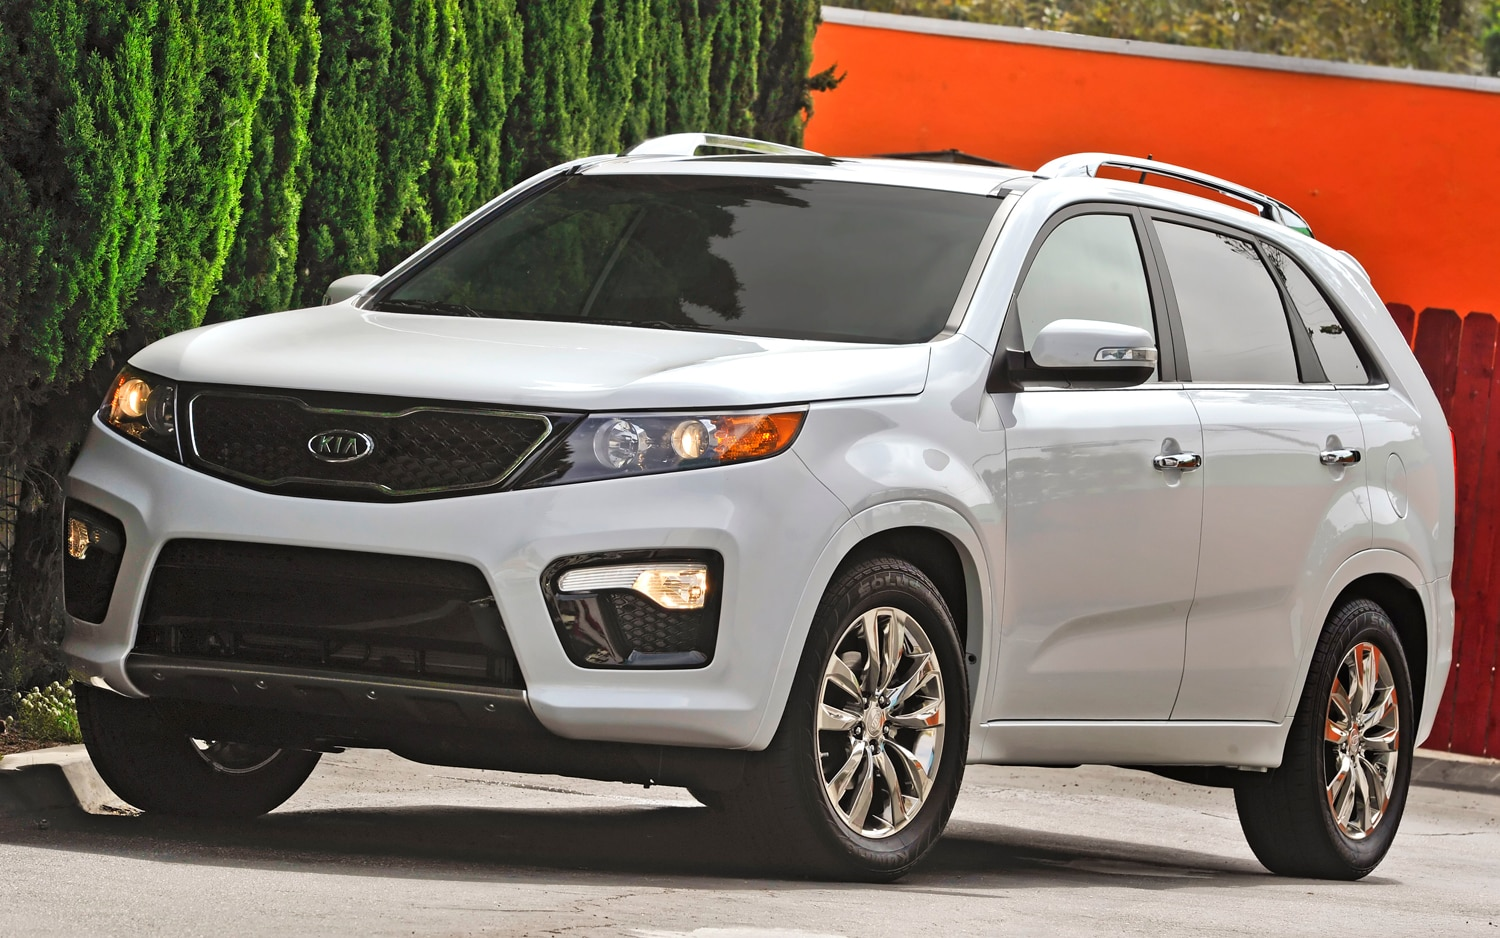 2012 Kia Sorento Front Left Side View 4